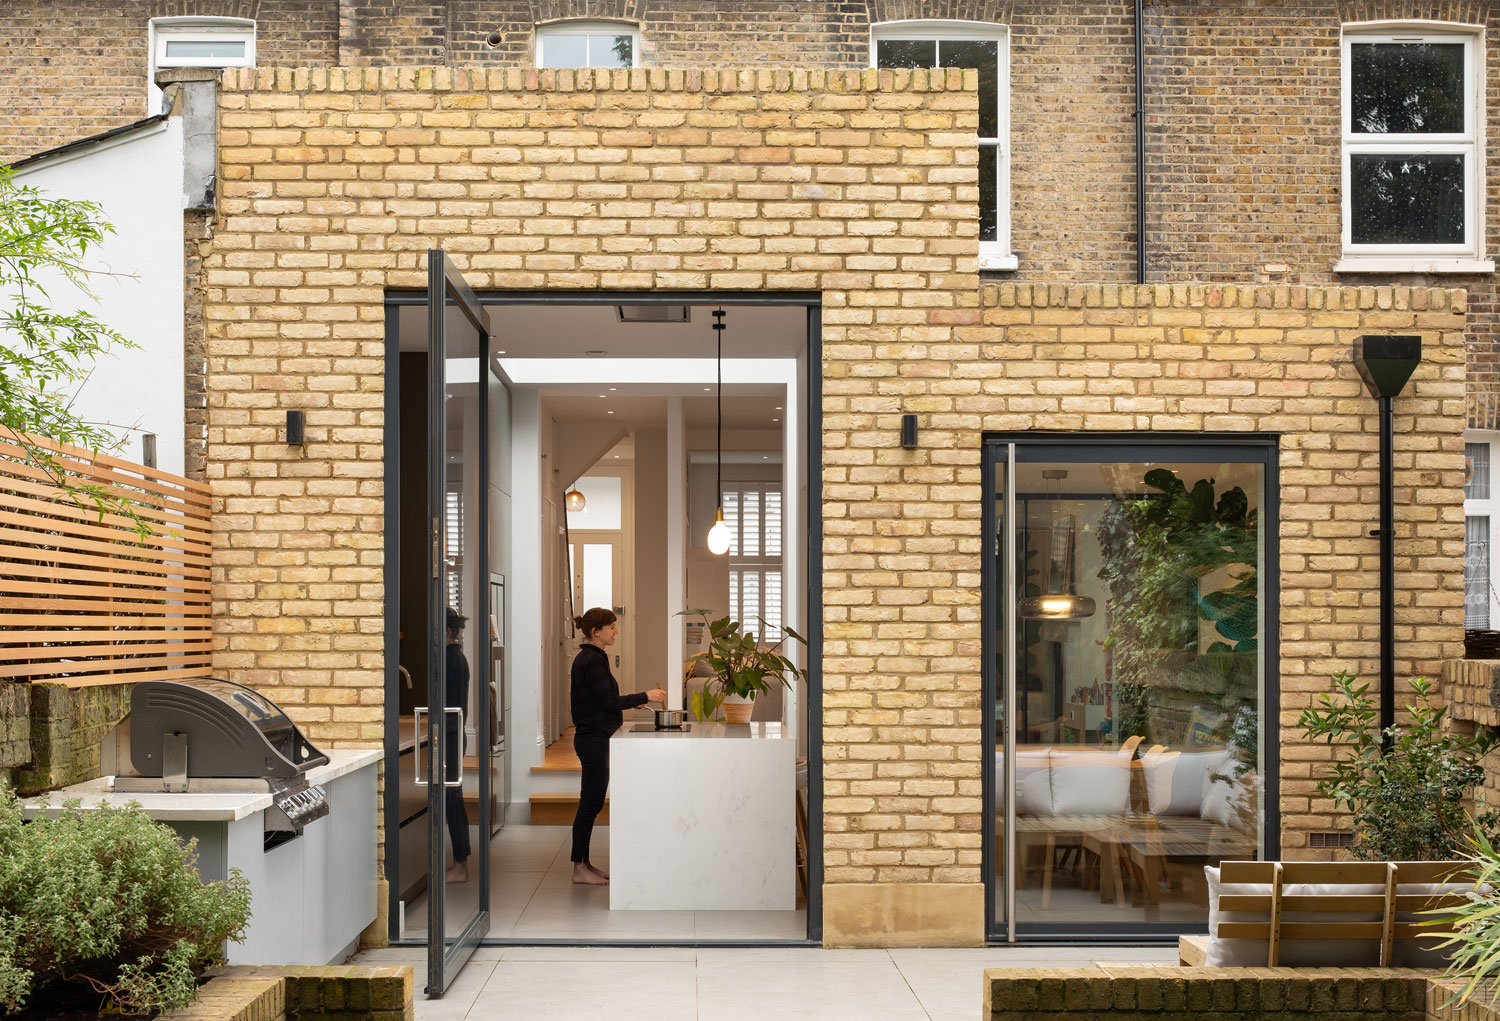 House-Extension-Cost-2020-External-Brick-Extension